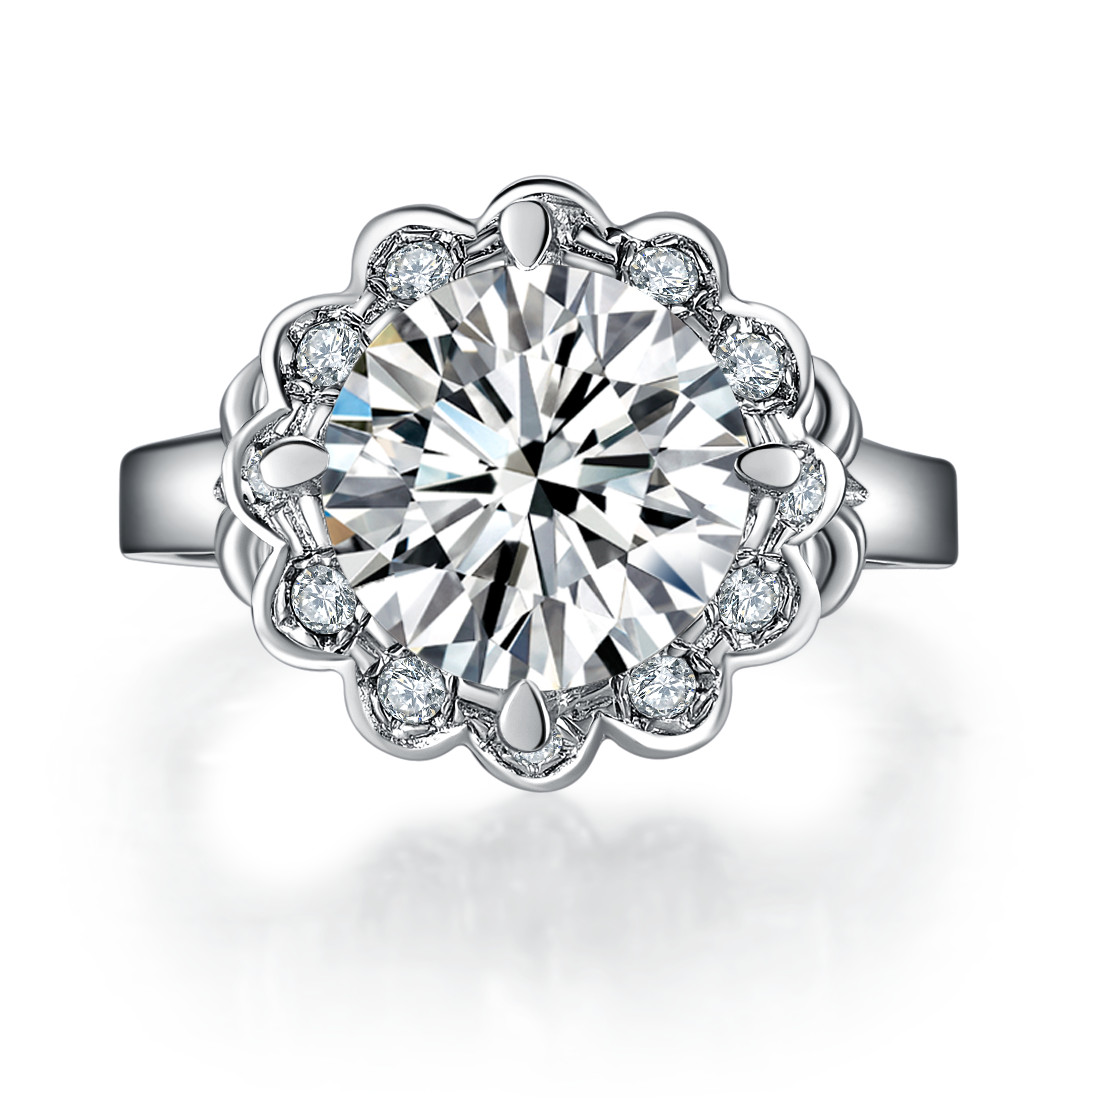 Vintage Flower Style 4ct Synthetic Diamonds Wedding Anniversary Ring Pure  Silver Engagement Jewelry For Bride Never